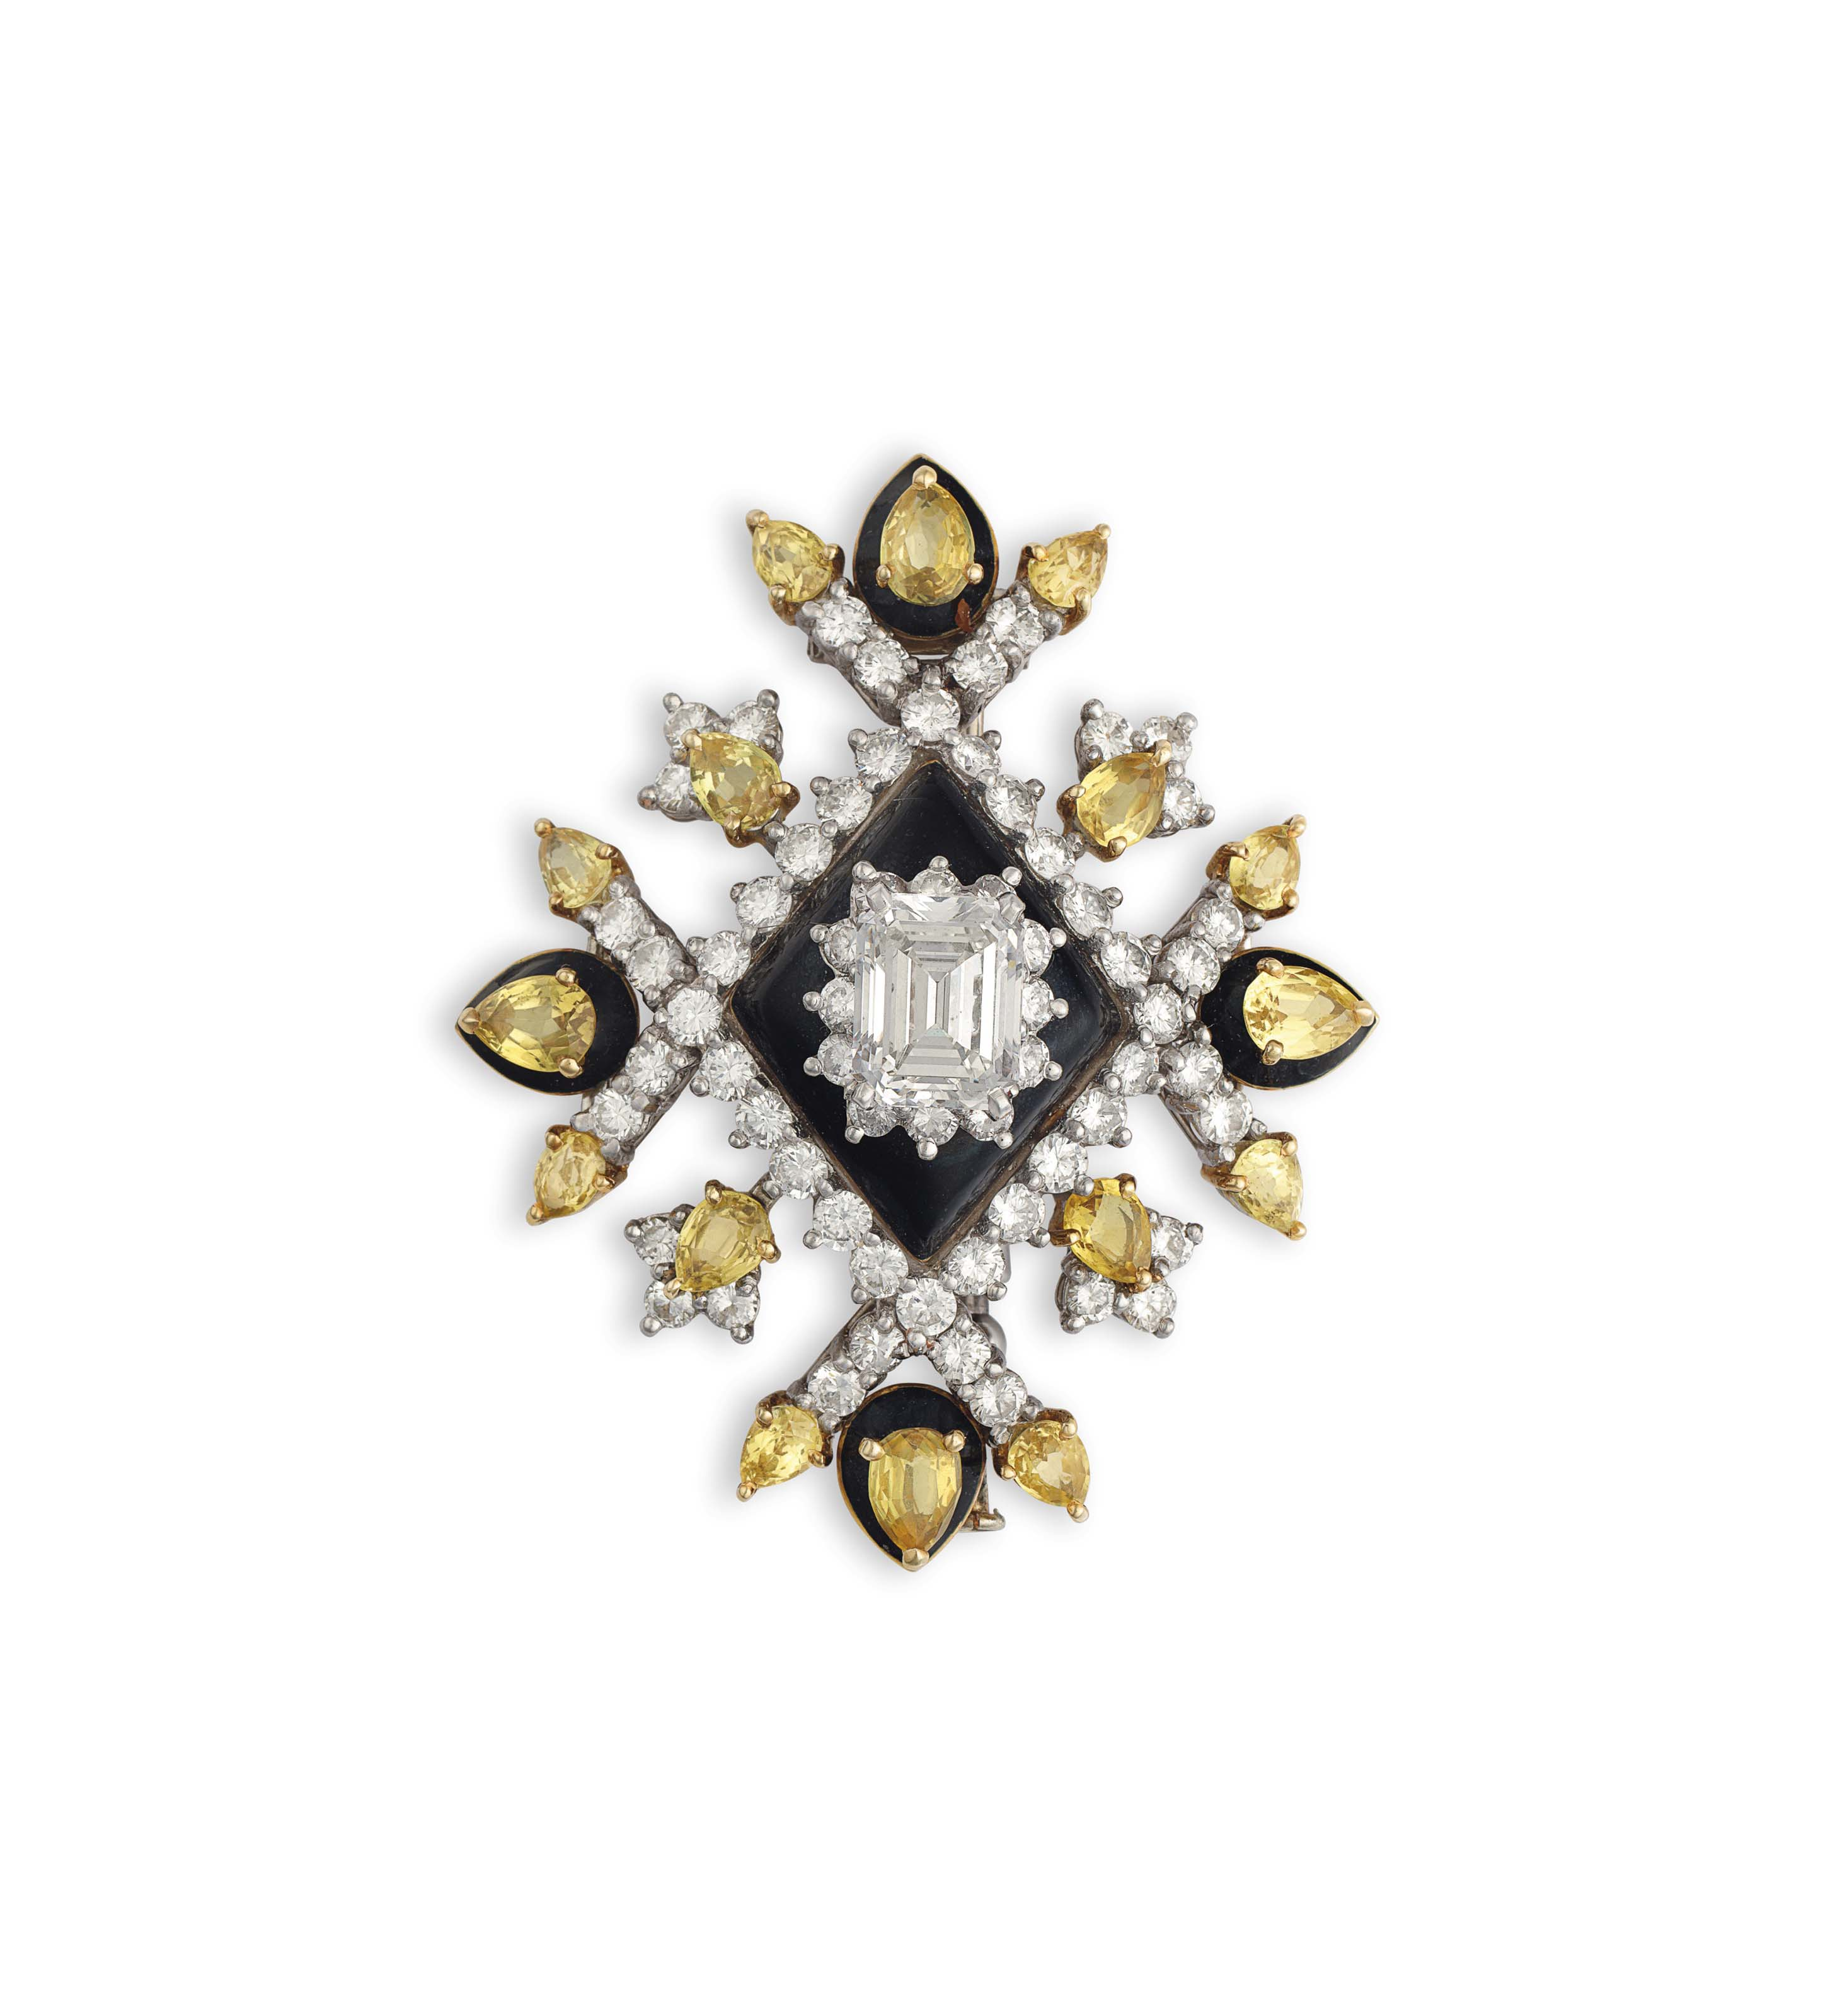 A DIAMOND, COLORED SAPPHIRE AND ENAMEL BROOCH, BY DONALD CLAFLIN, TIFFANY & CO.